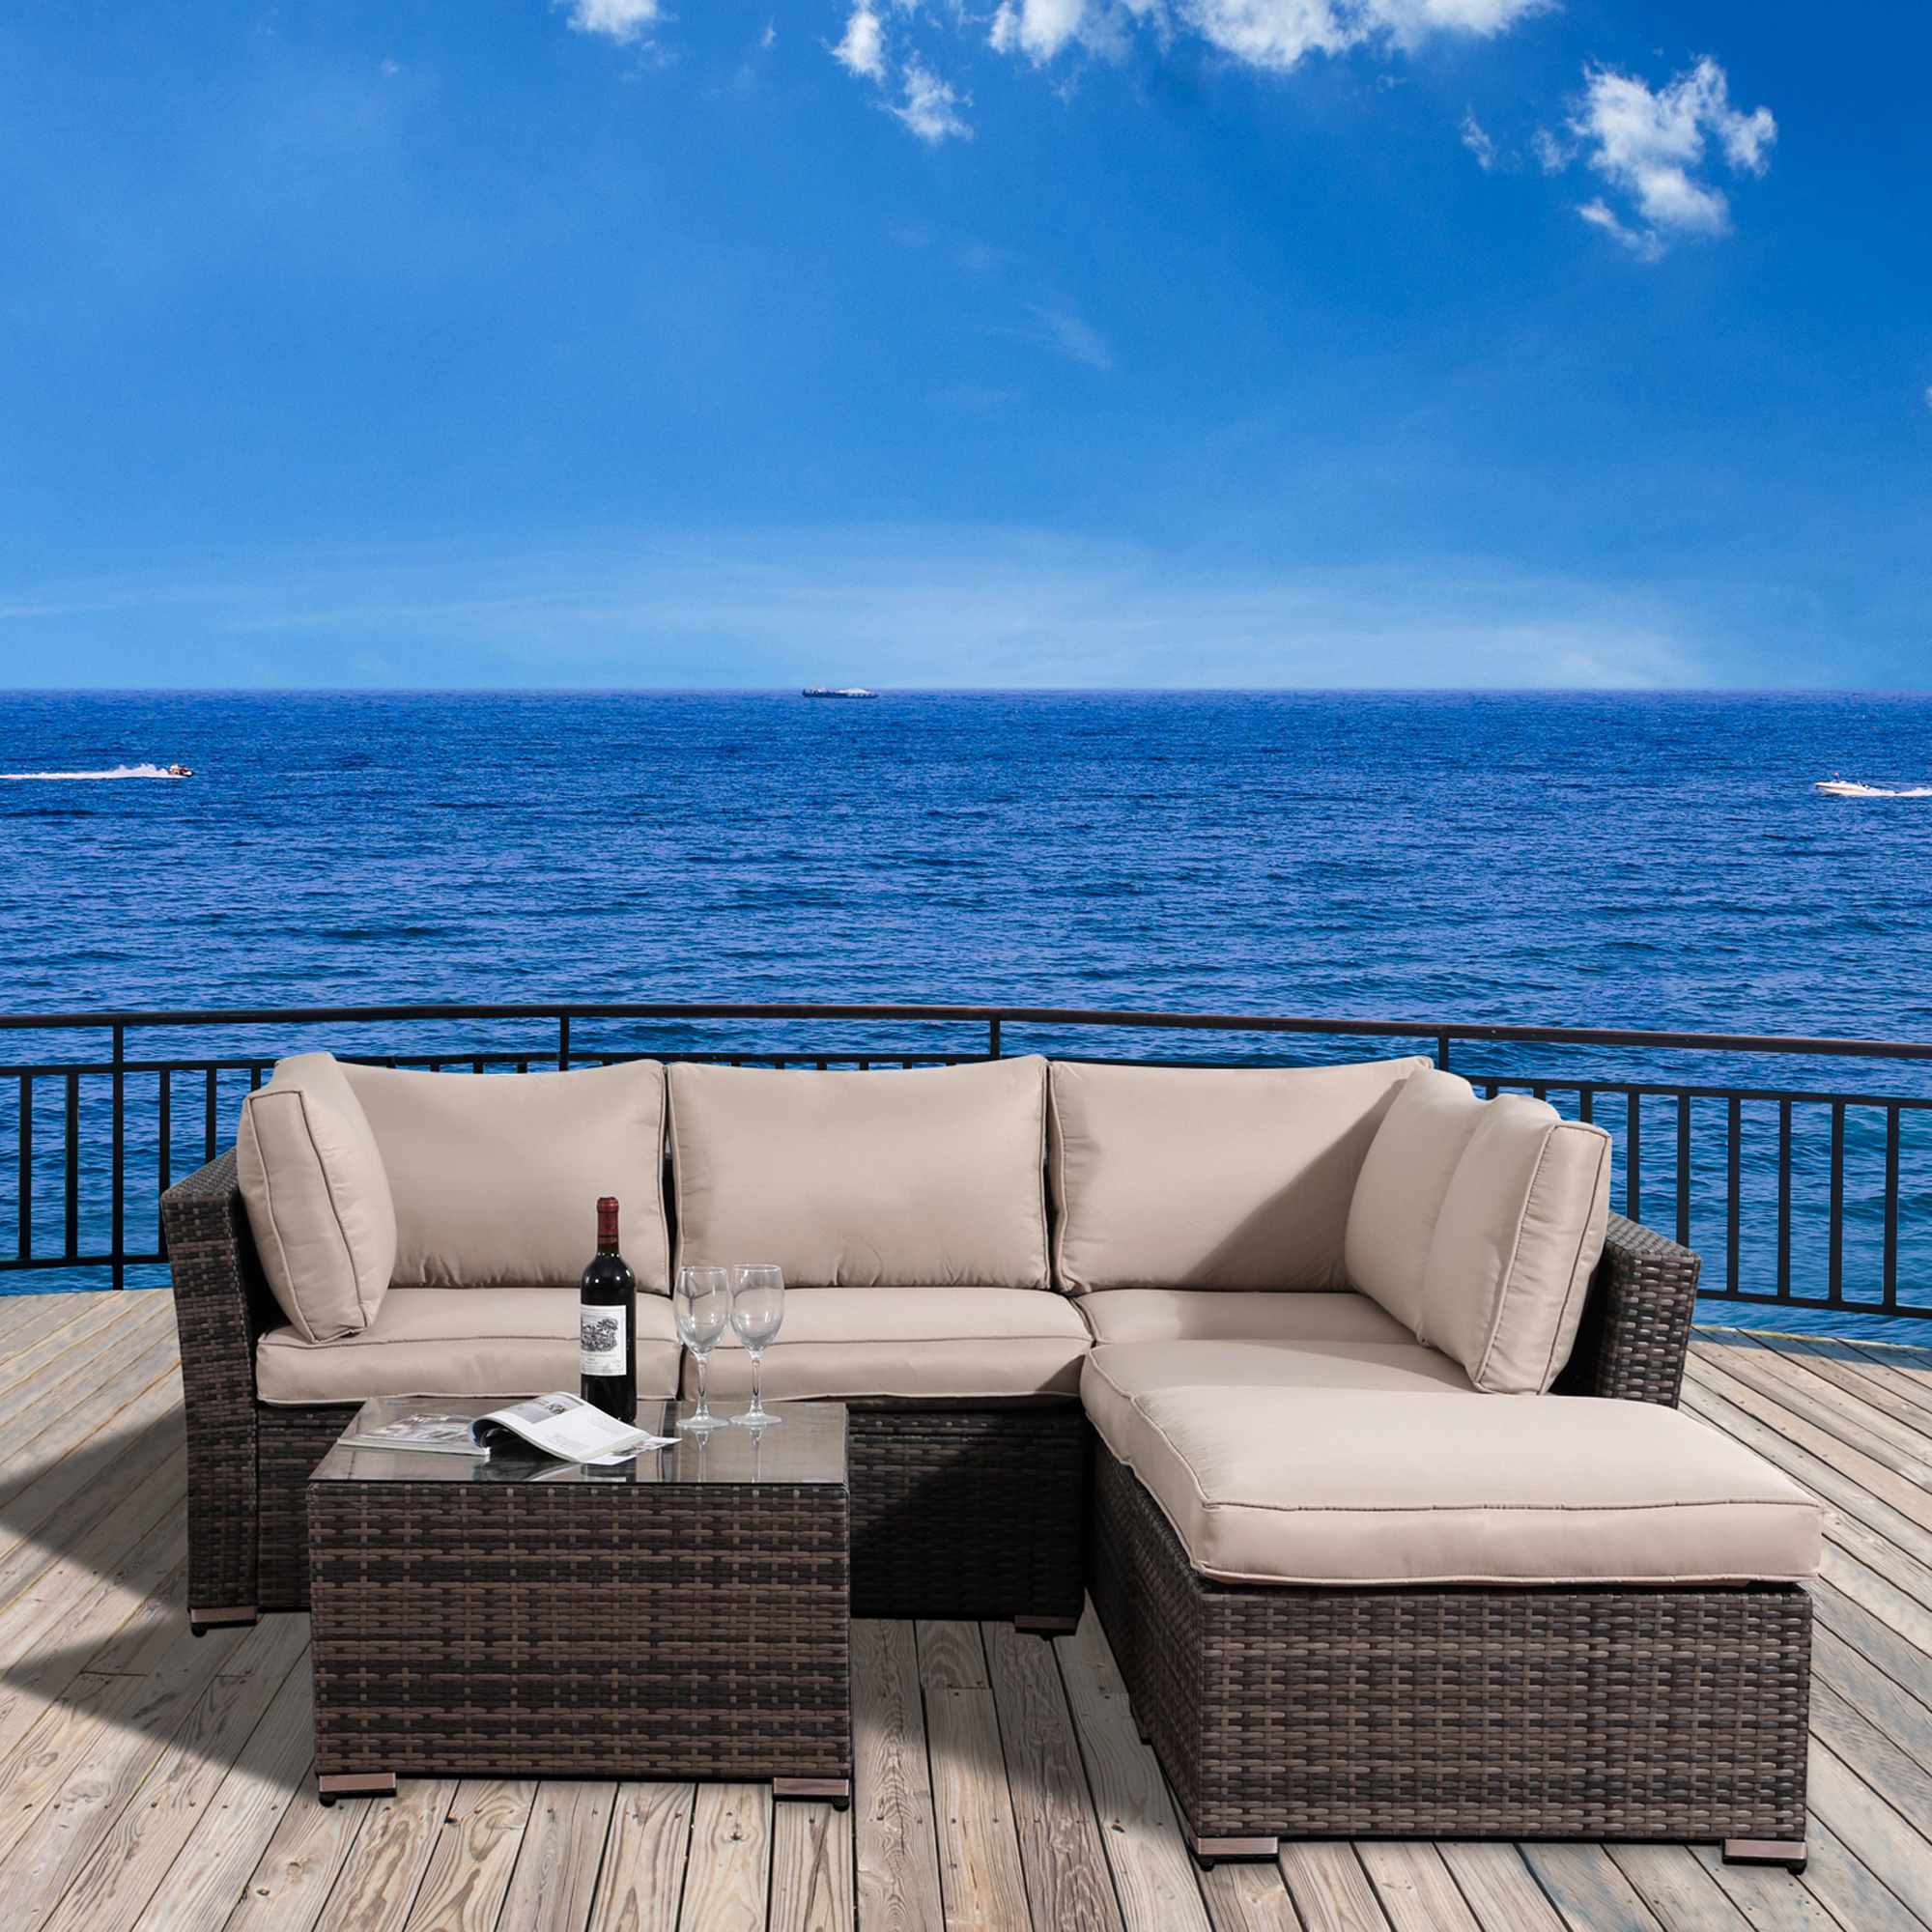 Outdoor Patio Furniture Sets Clearance, 4 Piece Ratten